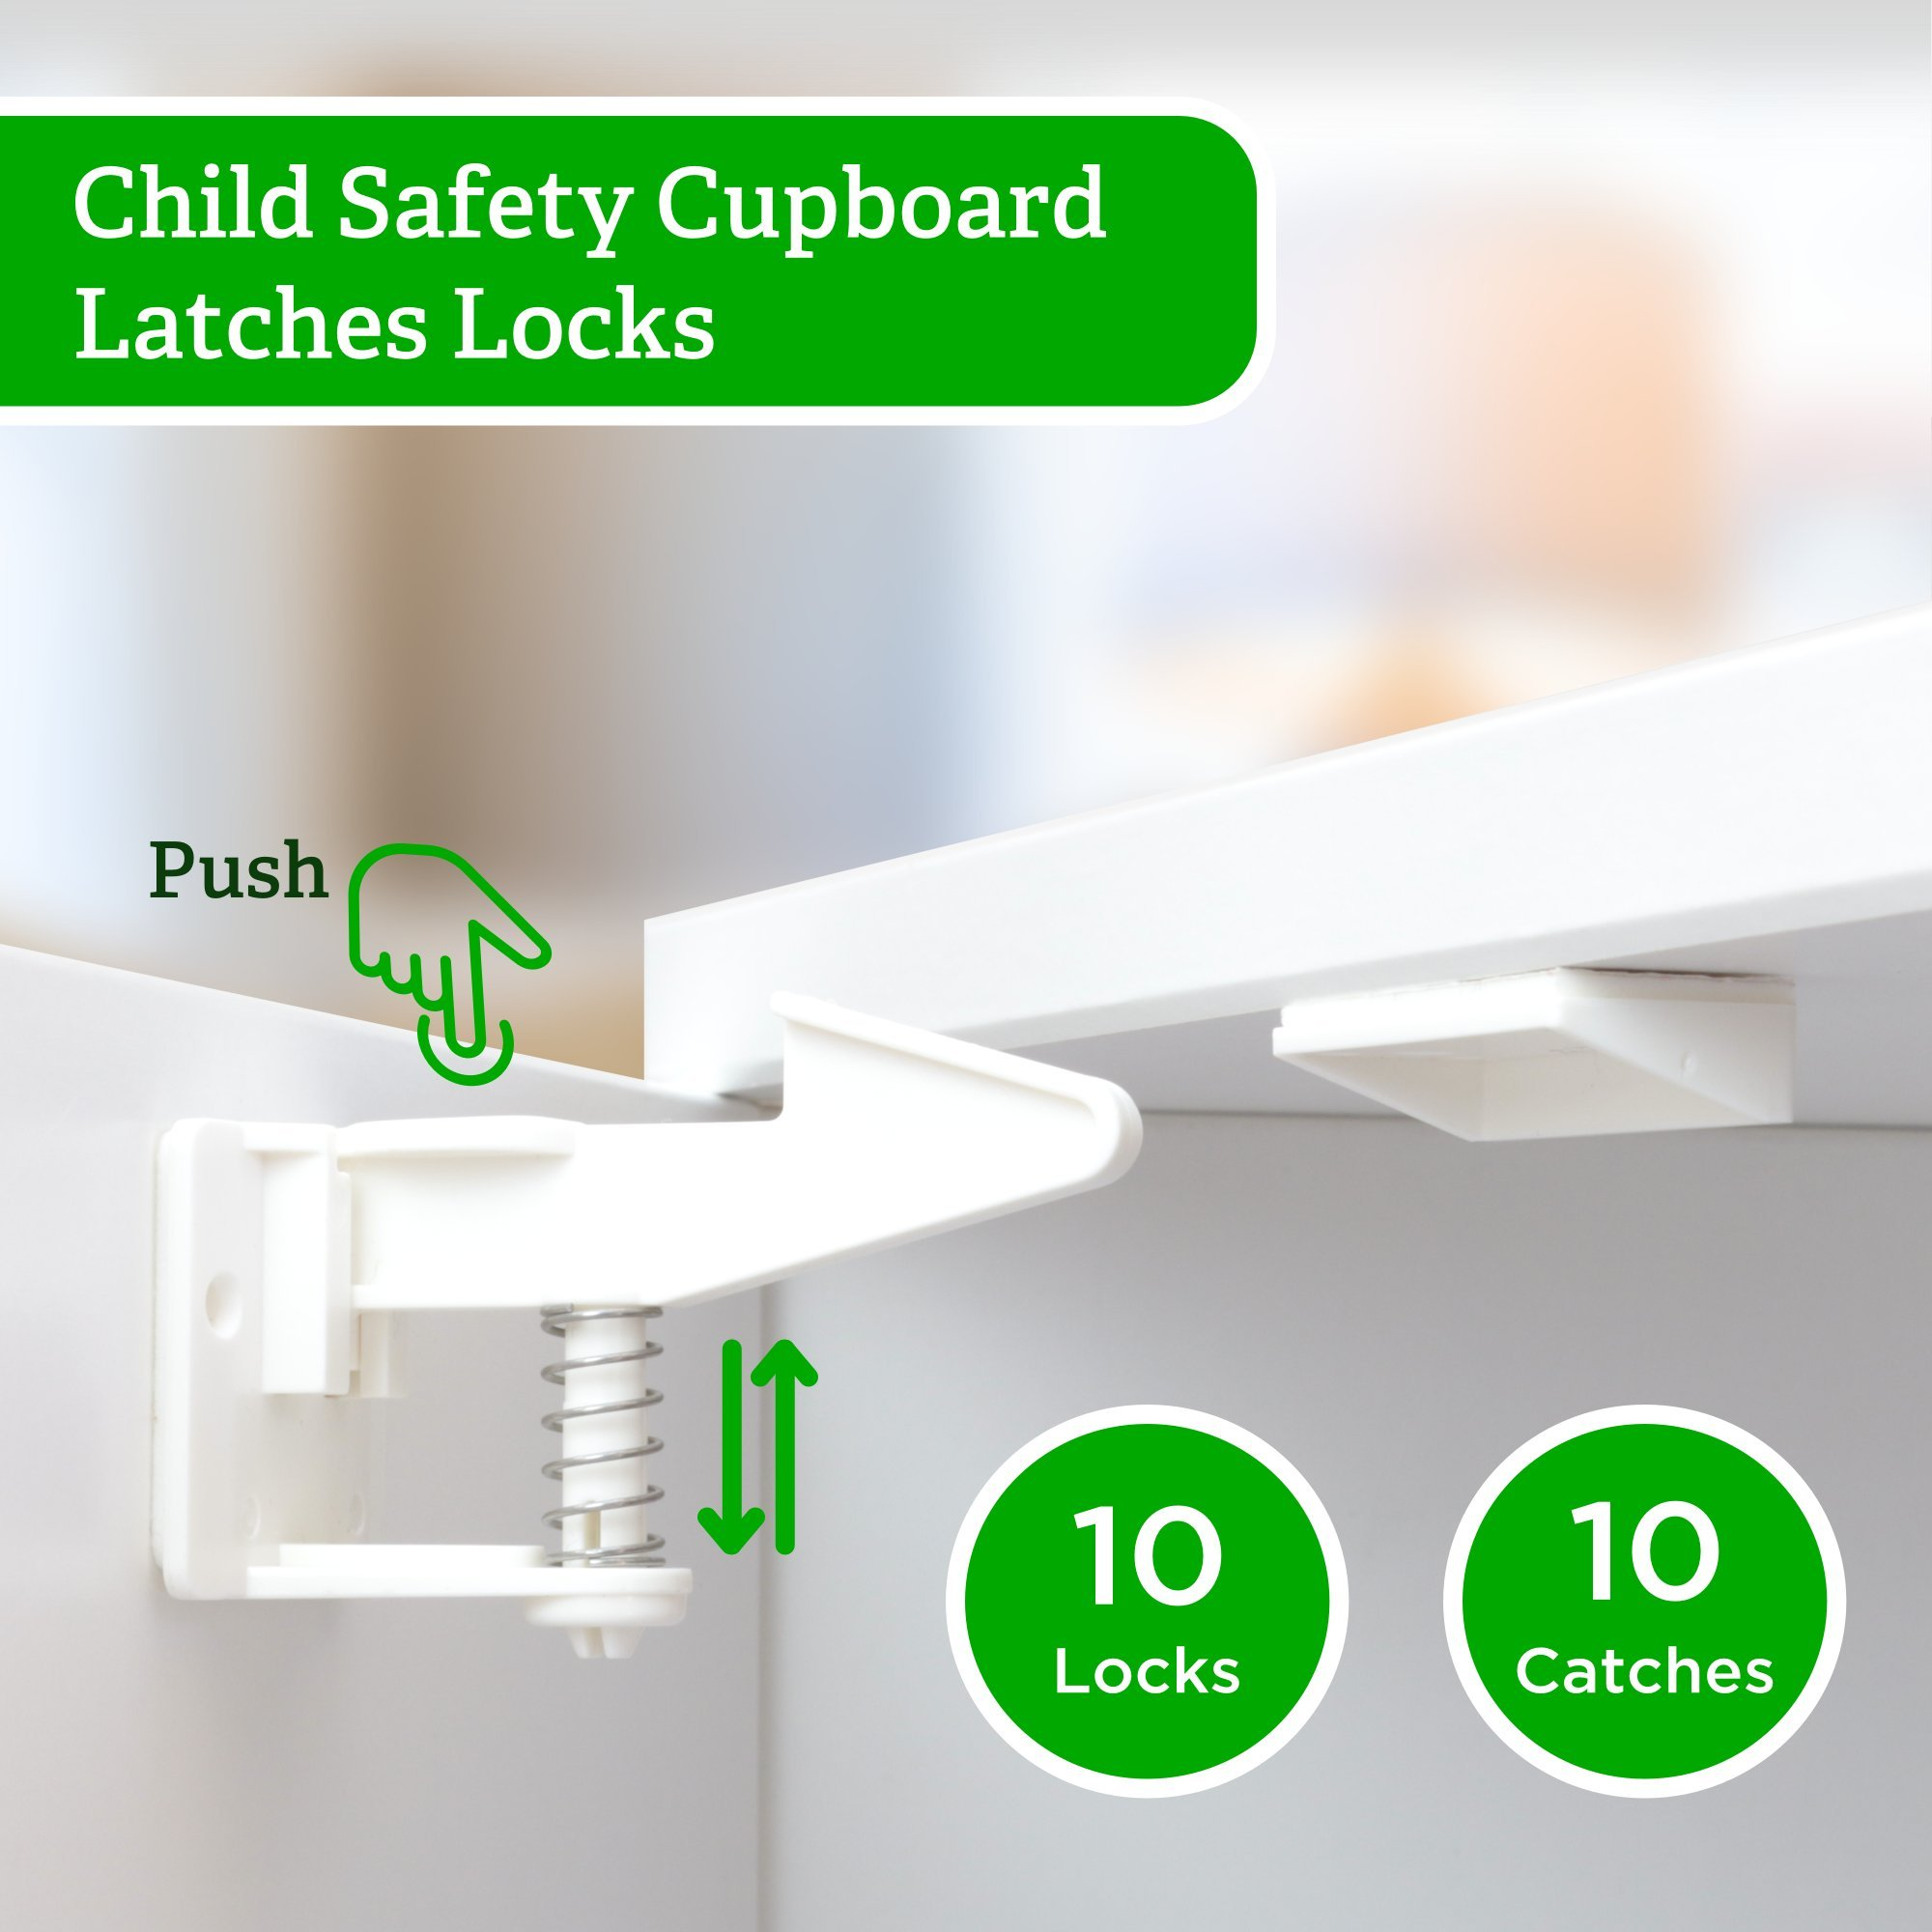 baby latches protectors cupboard drilling upgraded locks child dp com electric secure safe babyproofing pack amazon safety cabinet plug wappa invisible outlet by covers